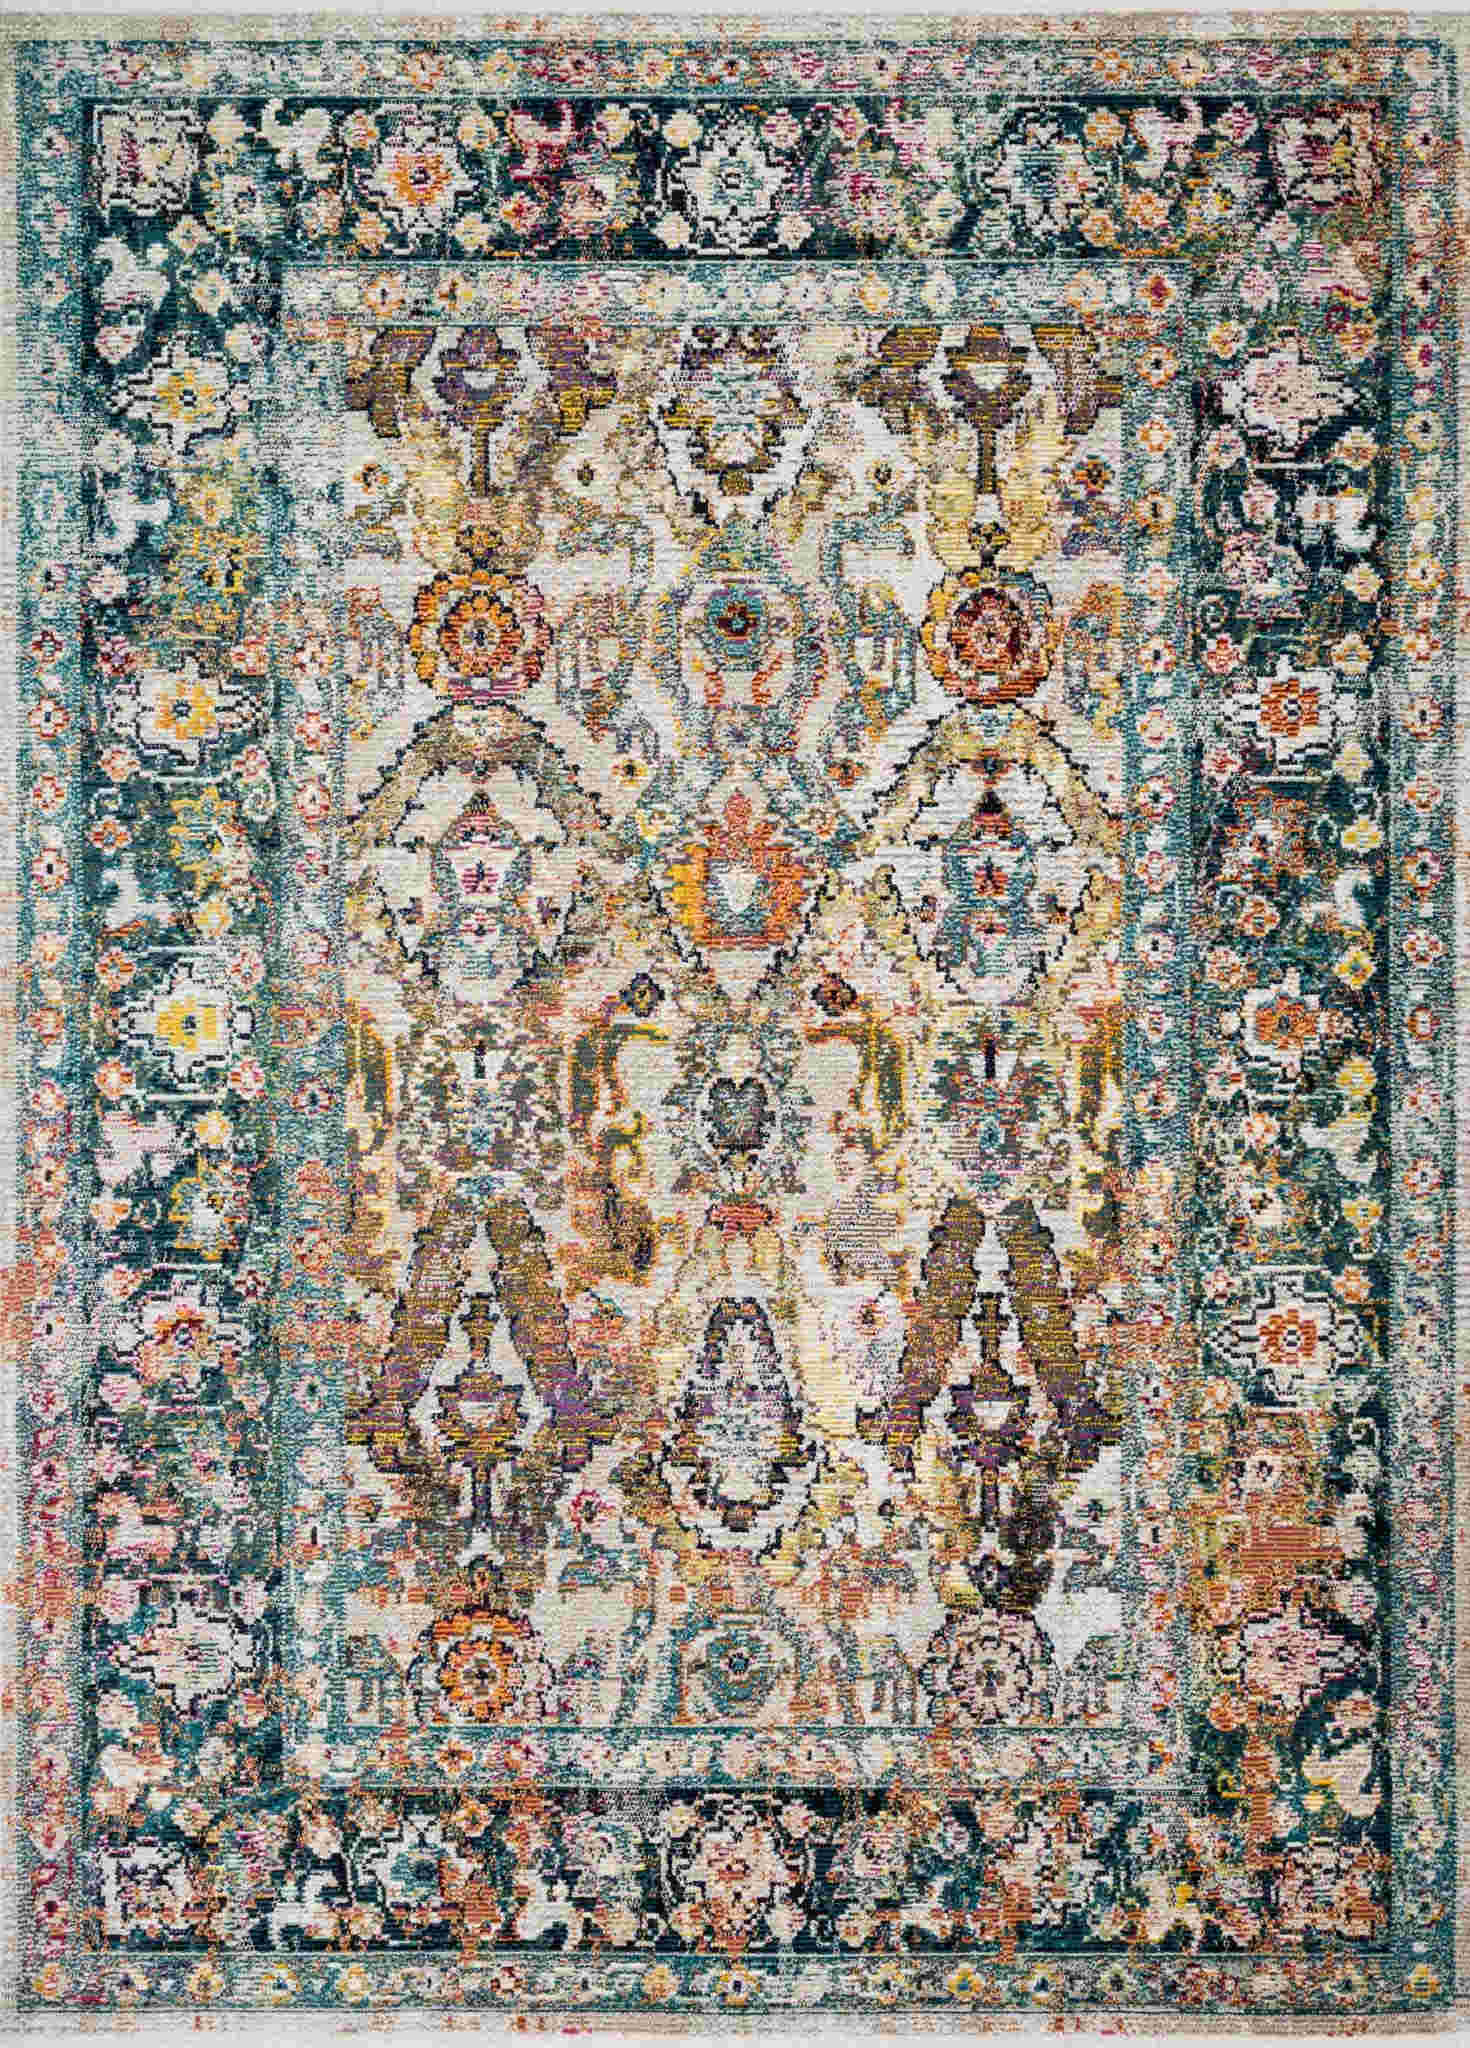 Loloi Silvia Sil-01 Stone / Teal Rug By Justina Blakeney